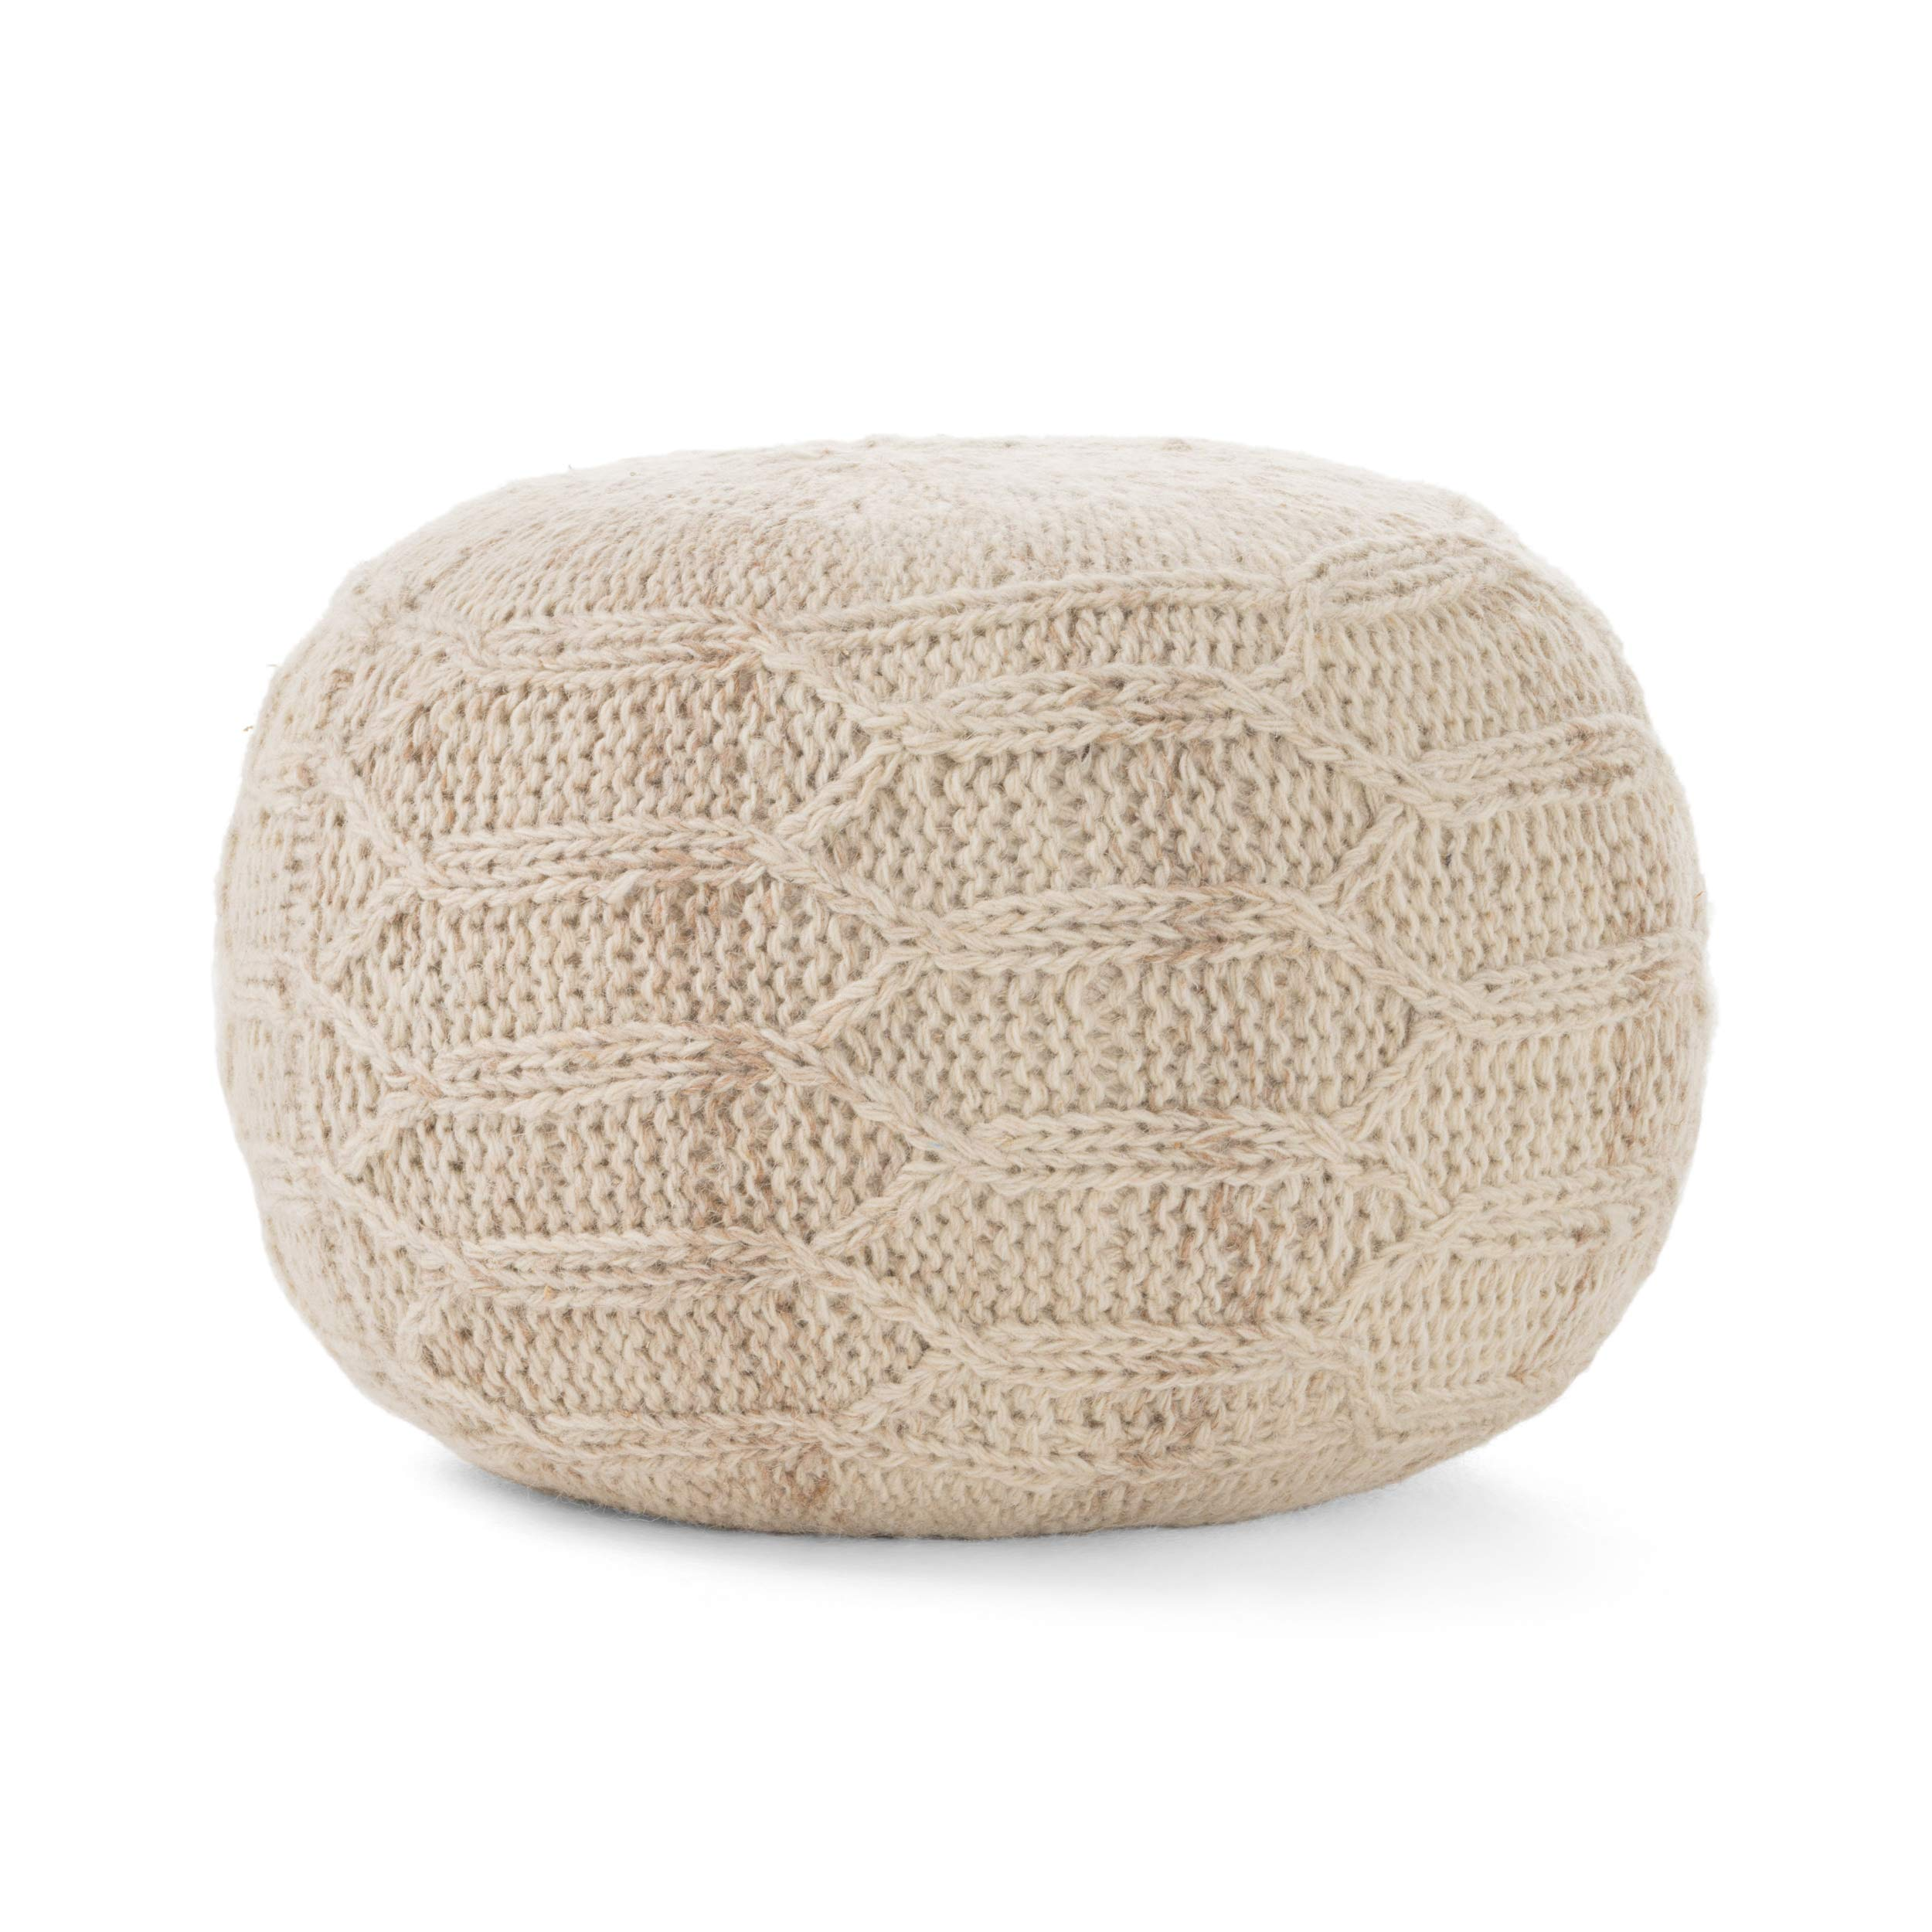 Christopher Knight Home Magnolia Handwoven 100% Wool Pouf (Ivory) by Christopher Knight Home